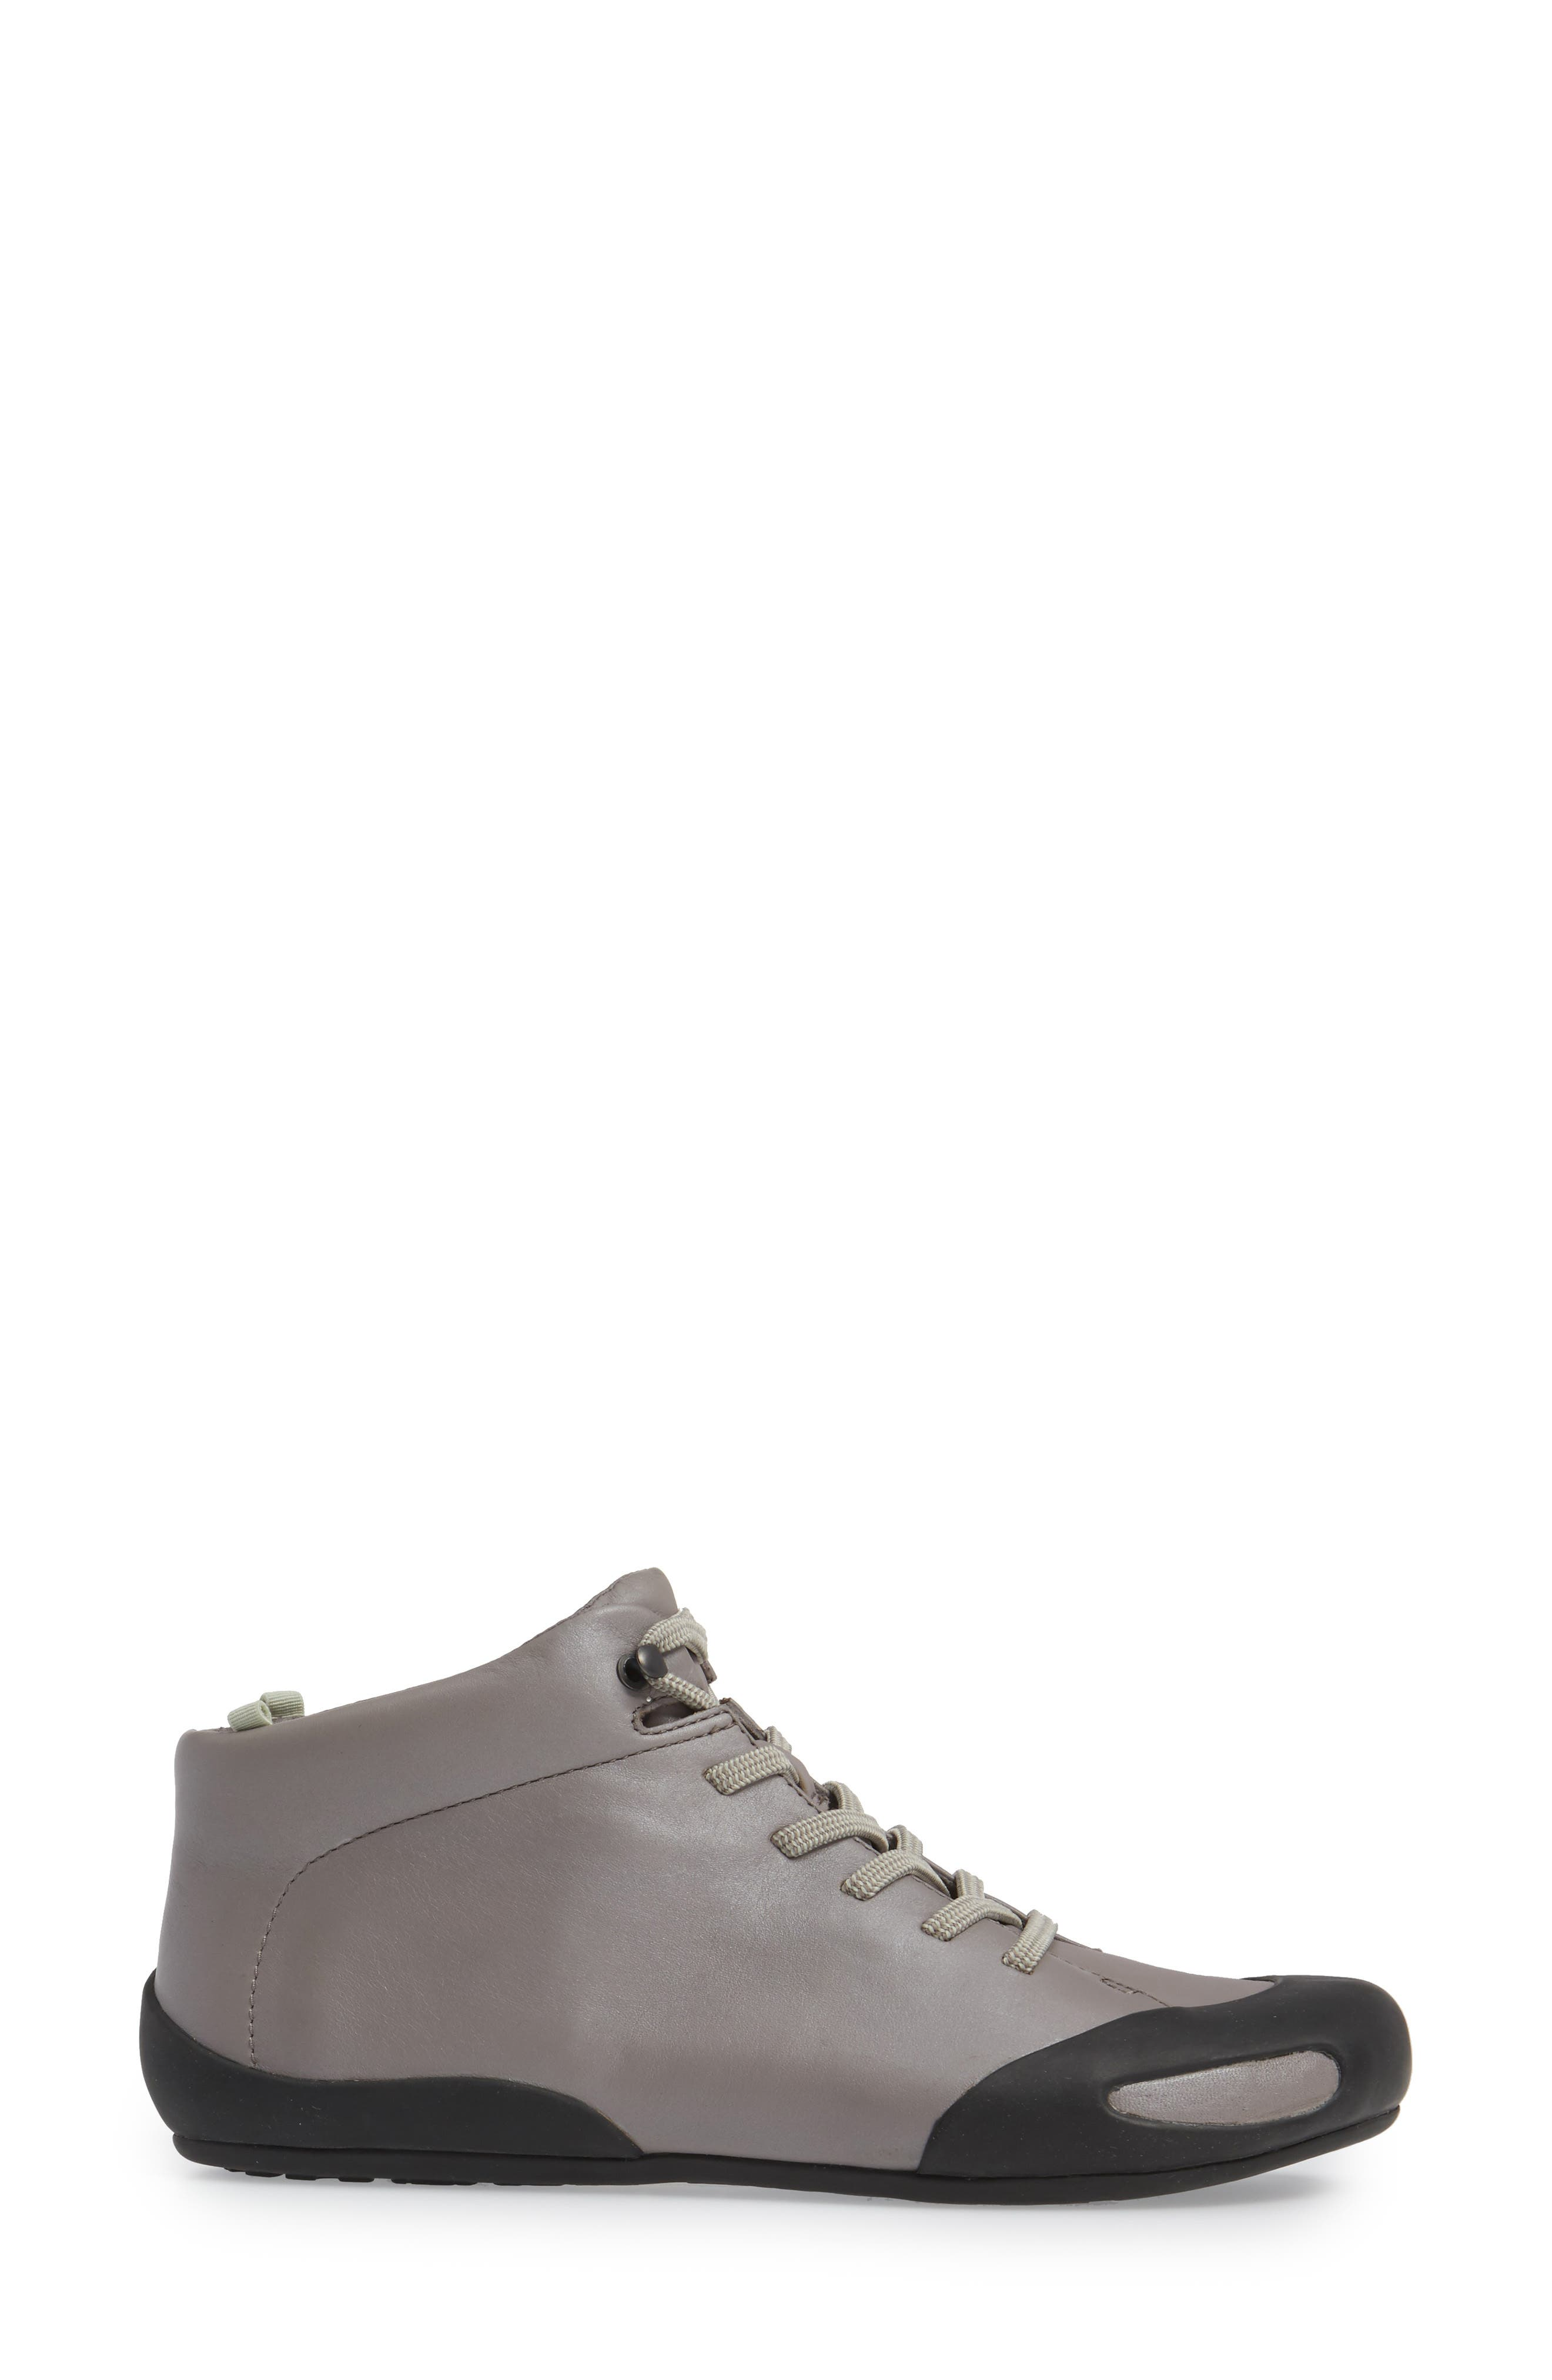 Alternate Image 3  - Camper Peu Senda Sneaker (Women)